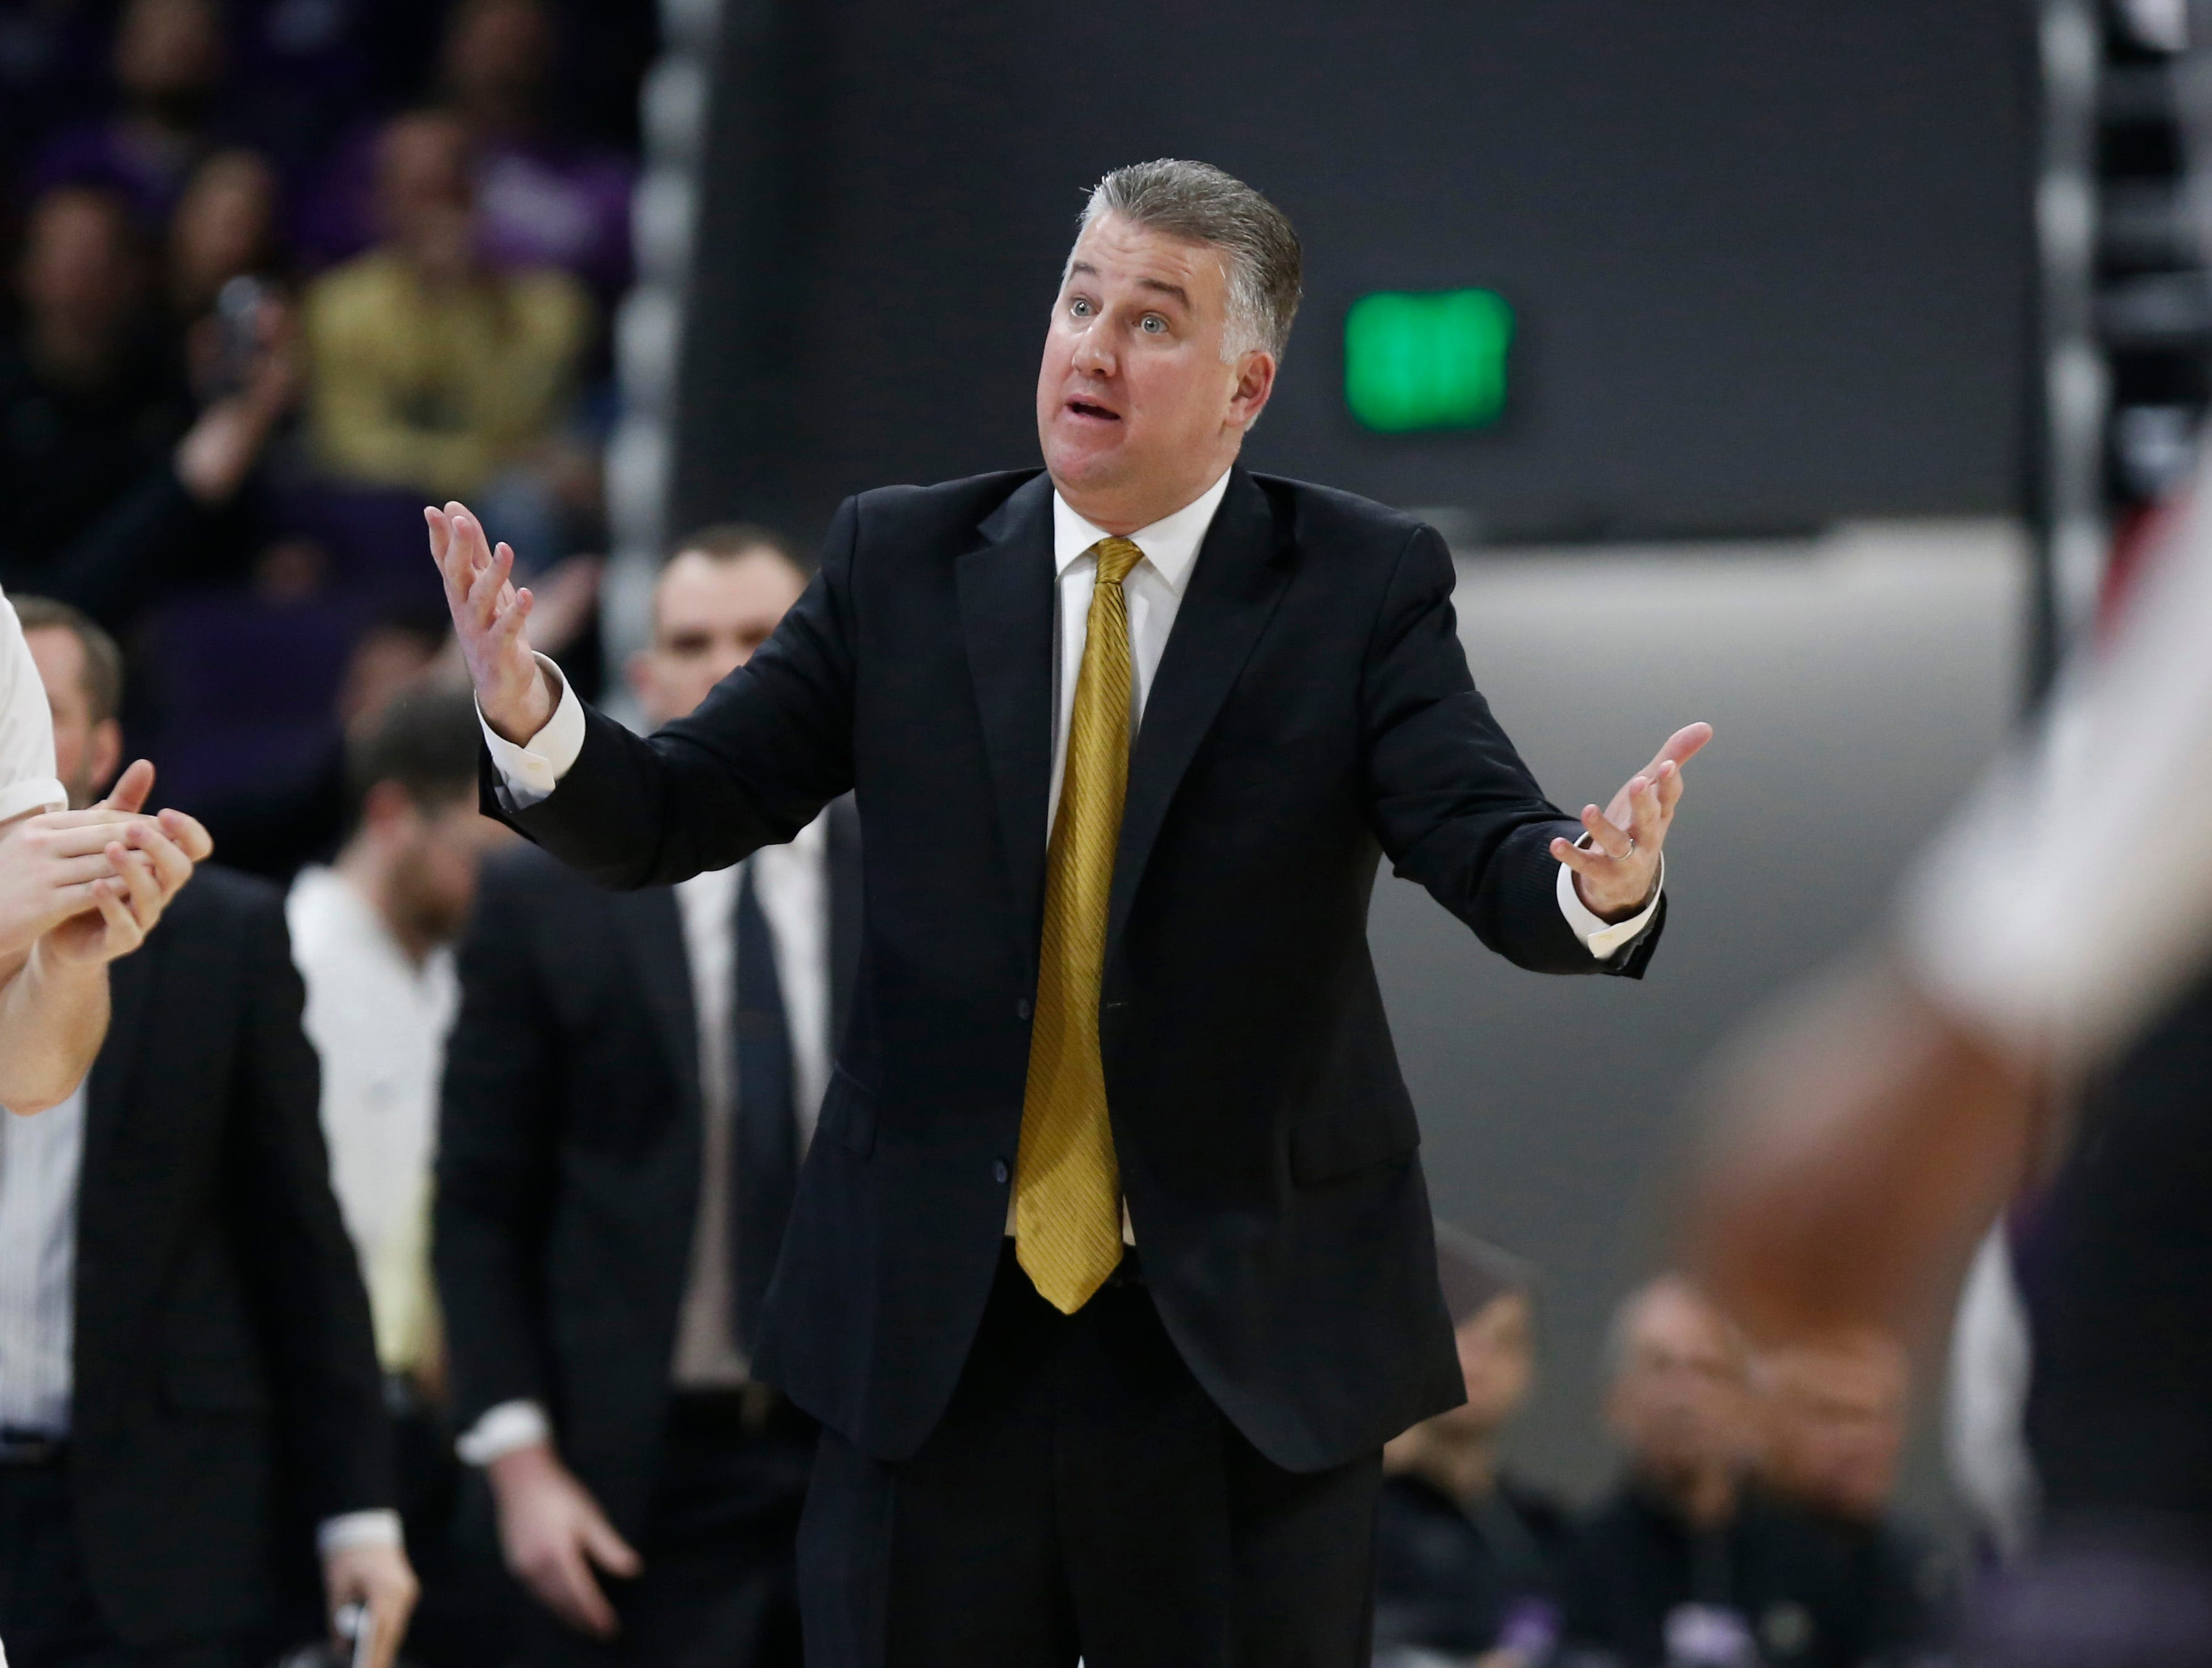 Mar 9, 2019; Evanston, IL, USA; Purdue Boilermakers head coach Matt Painter reacts during the first half against the Northwestern Wildcats at Welsh-Ryan Arena. Mandatory Credit: Nuccio DiNuzzo-USA TODAY Sports